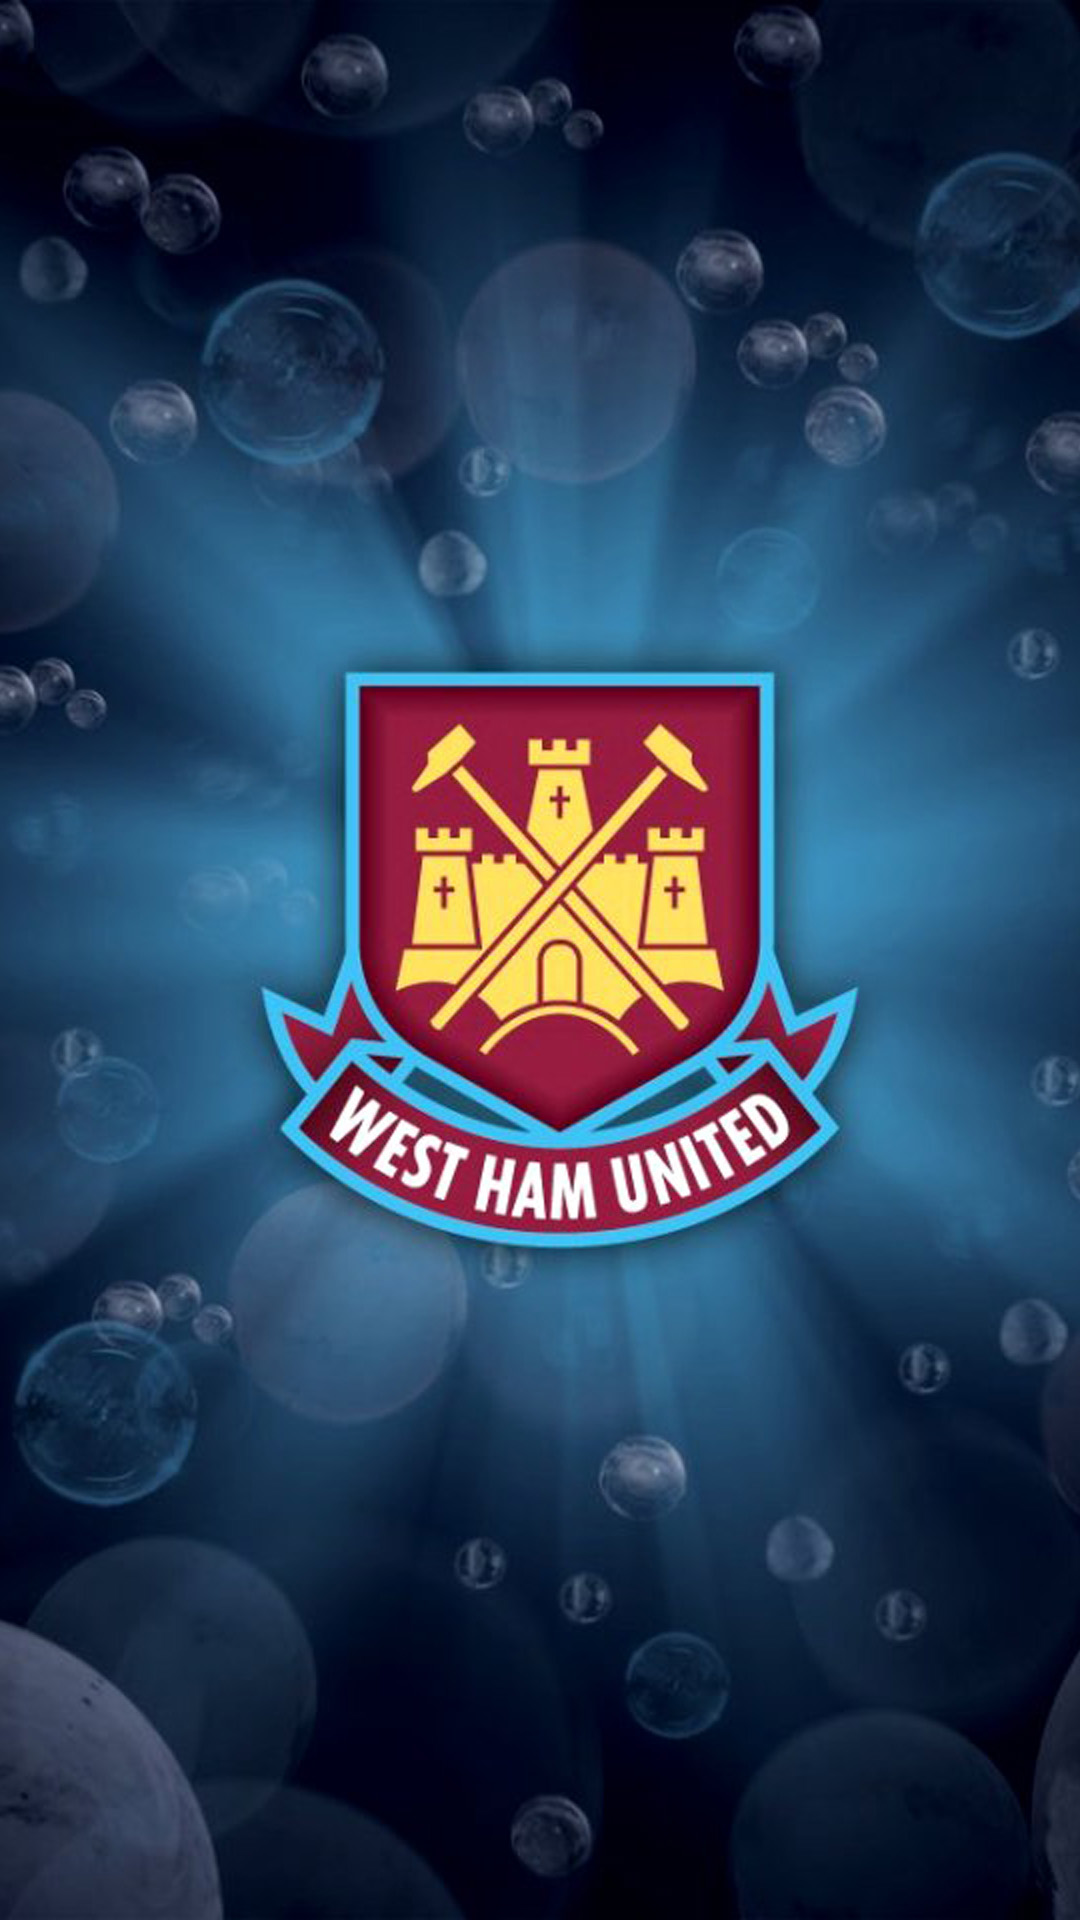 Download Animated Wallpapers For Mobile Phone West Ham Utd Hd Wallpaper Iphone 6 Plus Wallpapersmobile Net